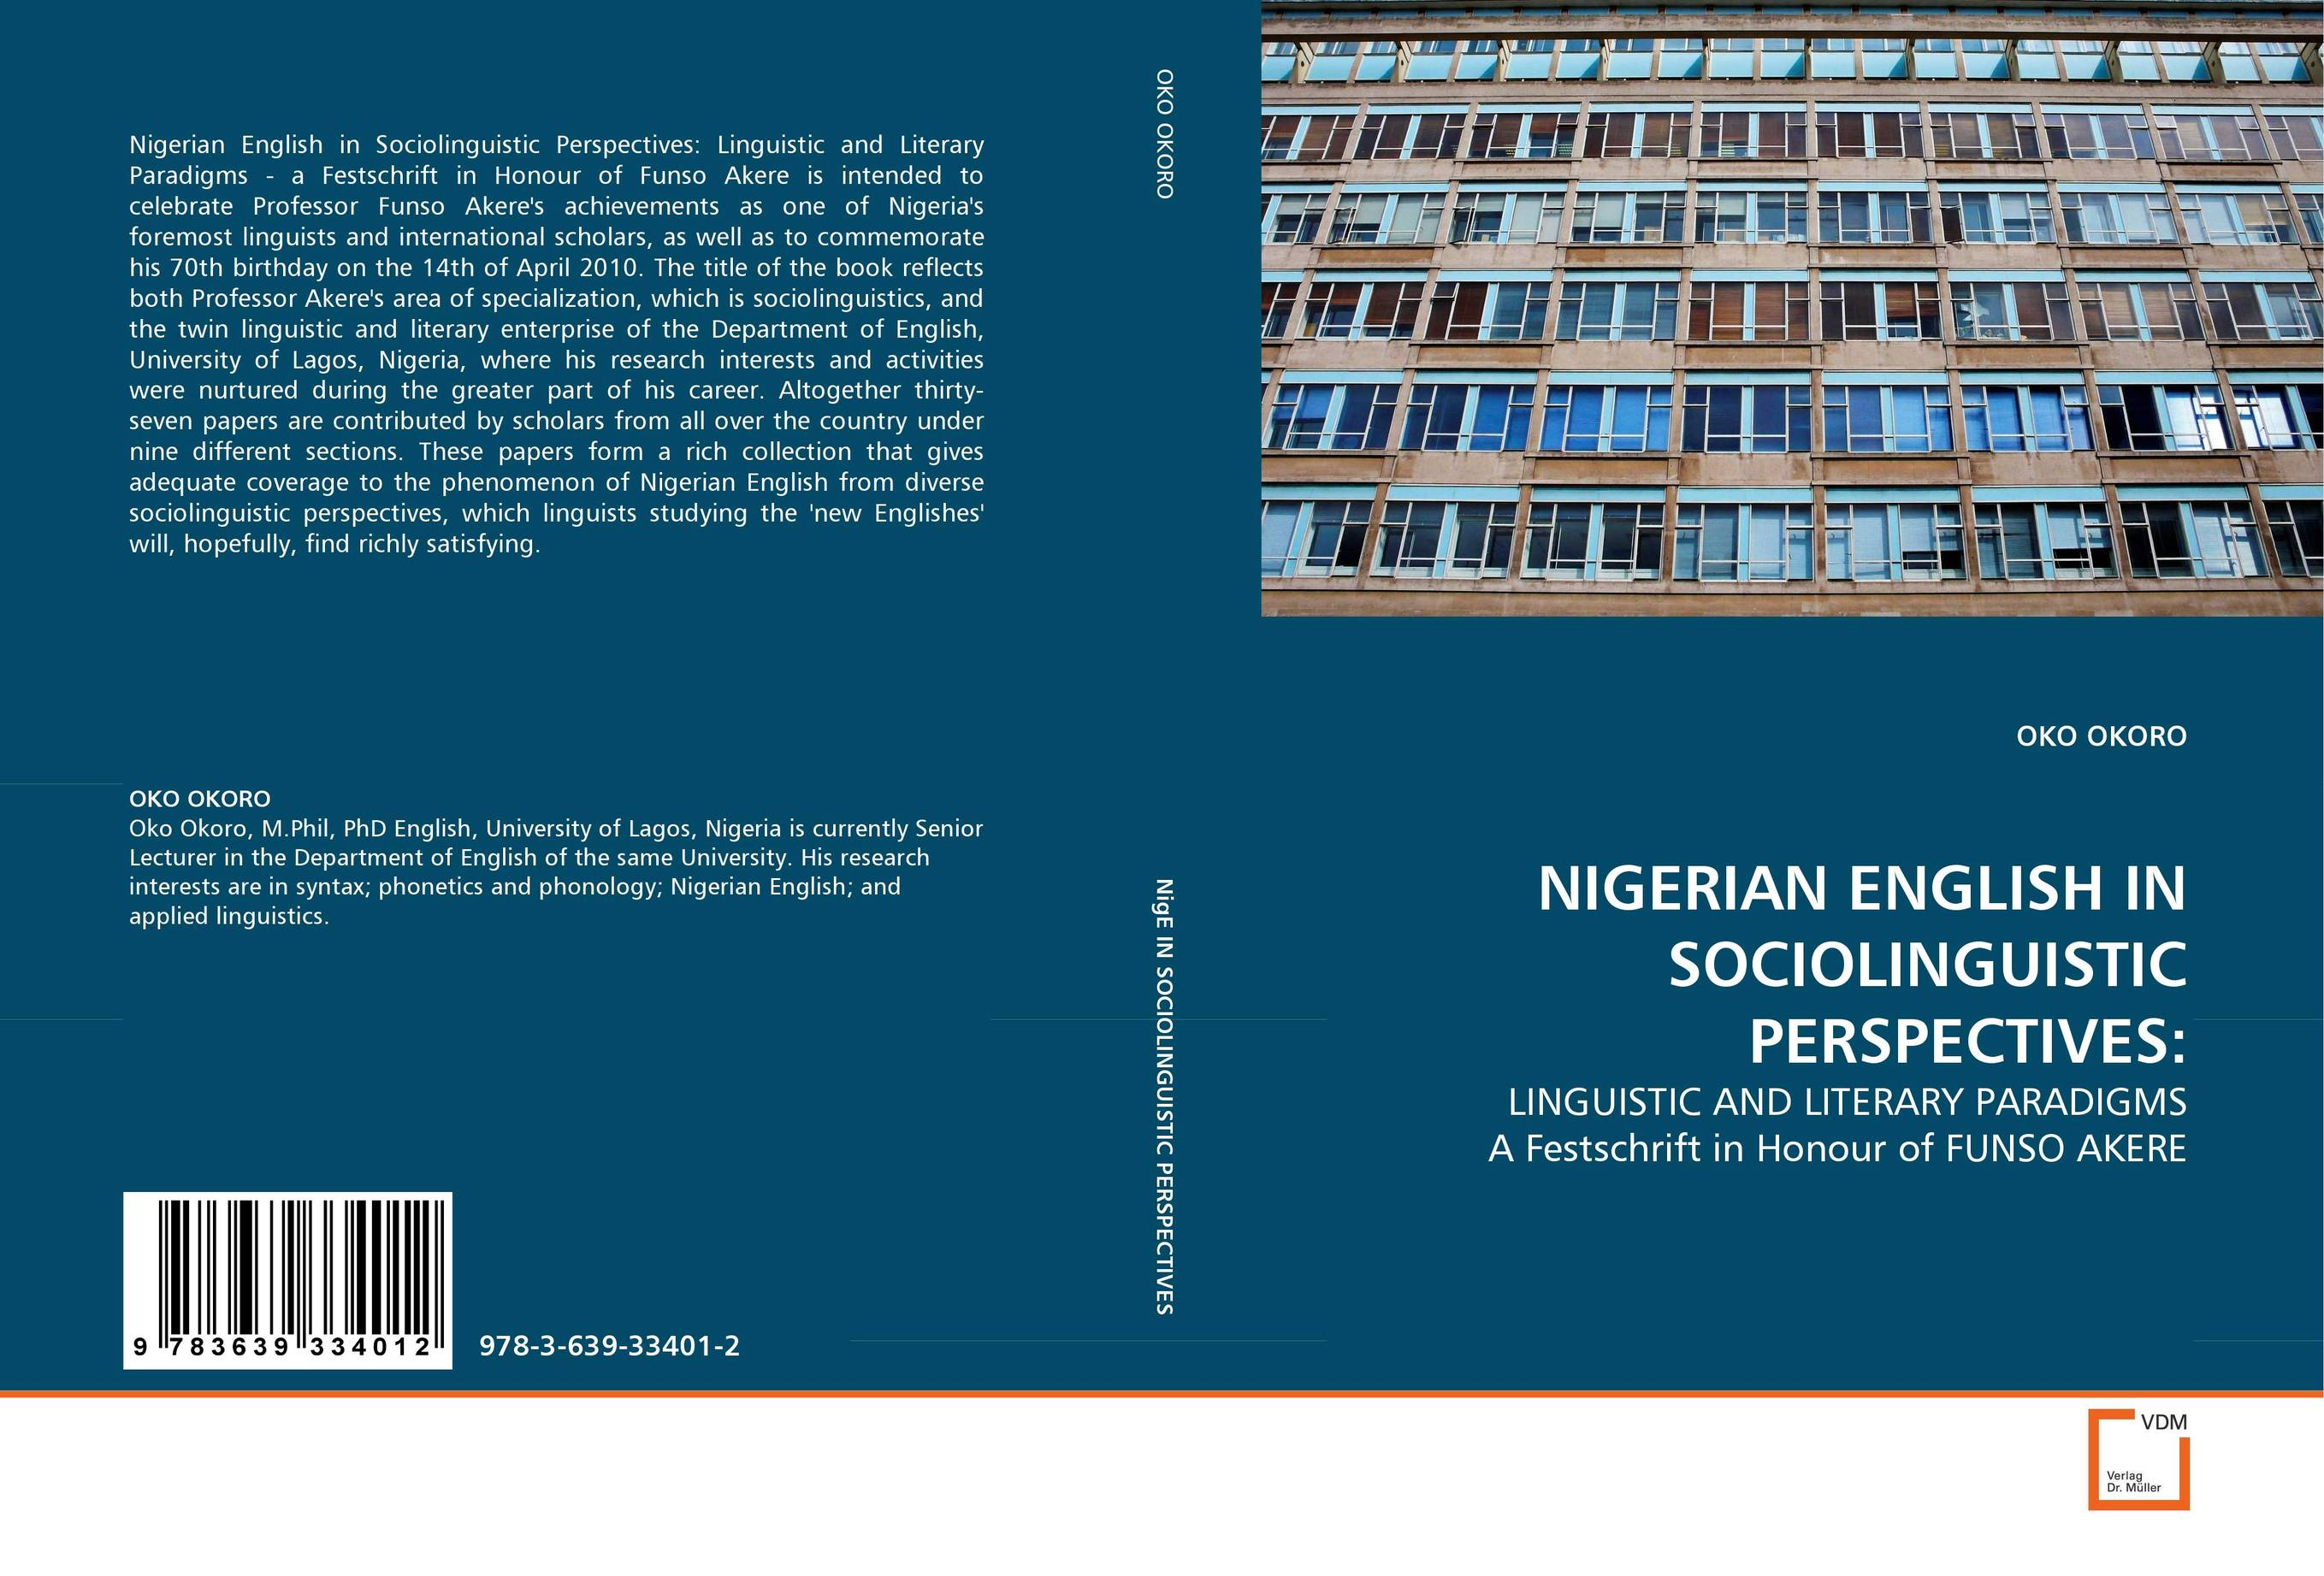 NIGERIAN ENGLISH IN SOCIOLINGUISTIC PERSPECTIVES: